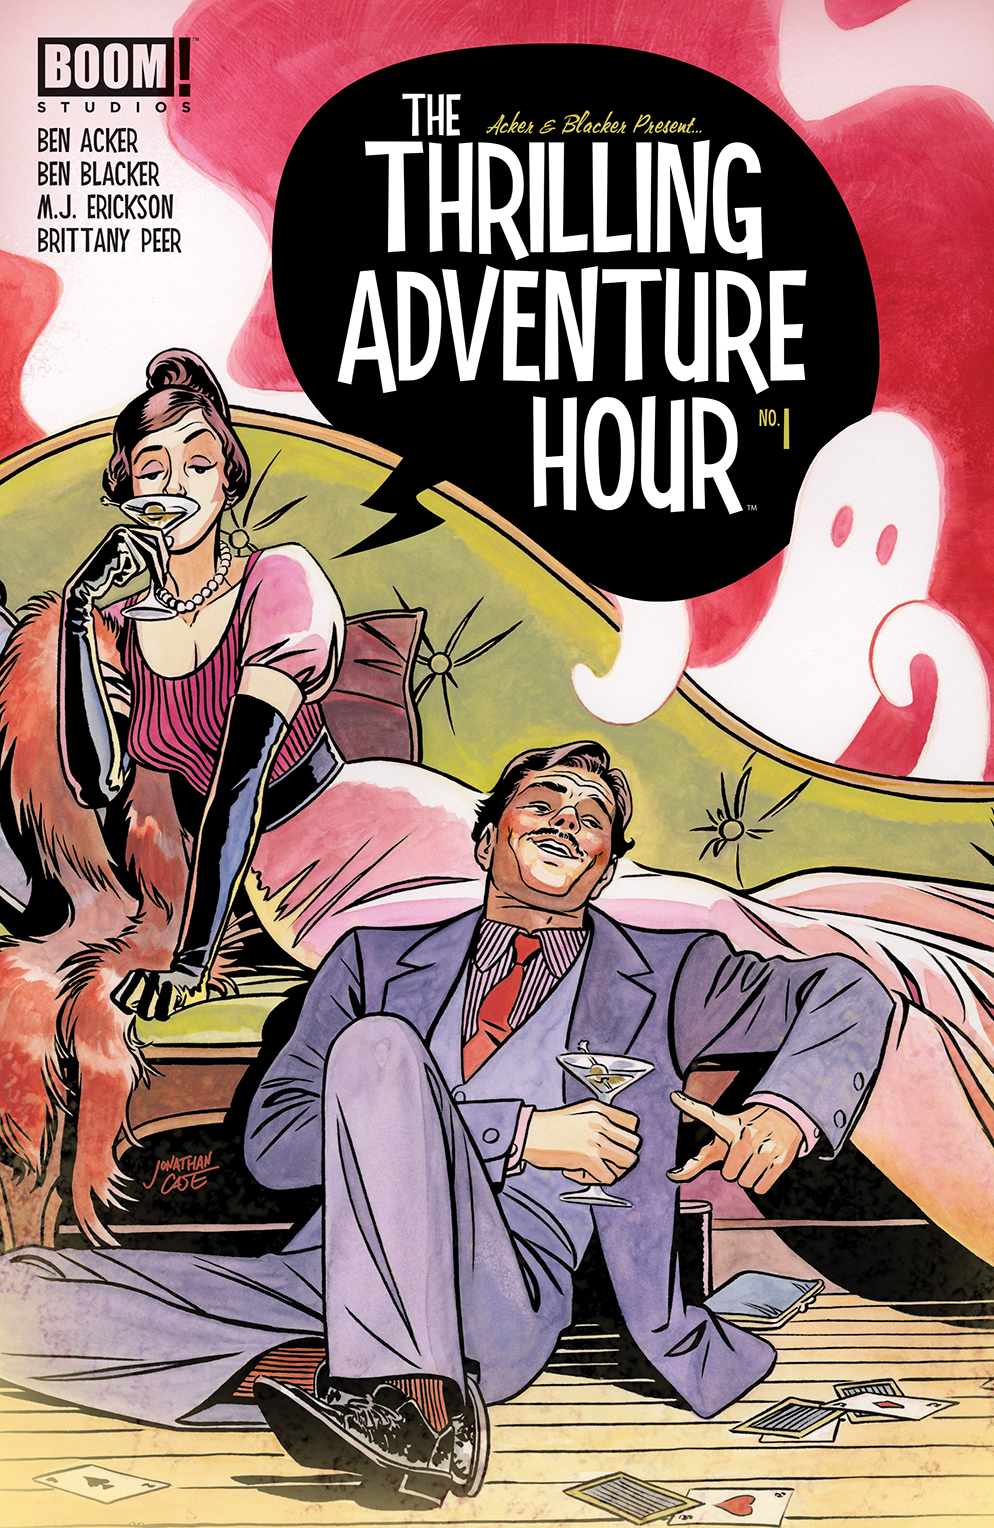 THRILLING ADVENTURE HOUR #1 (OF 4) CVR A CASE